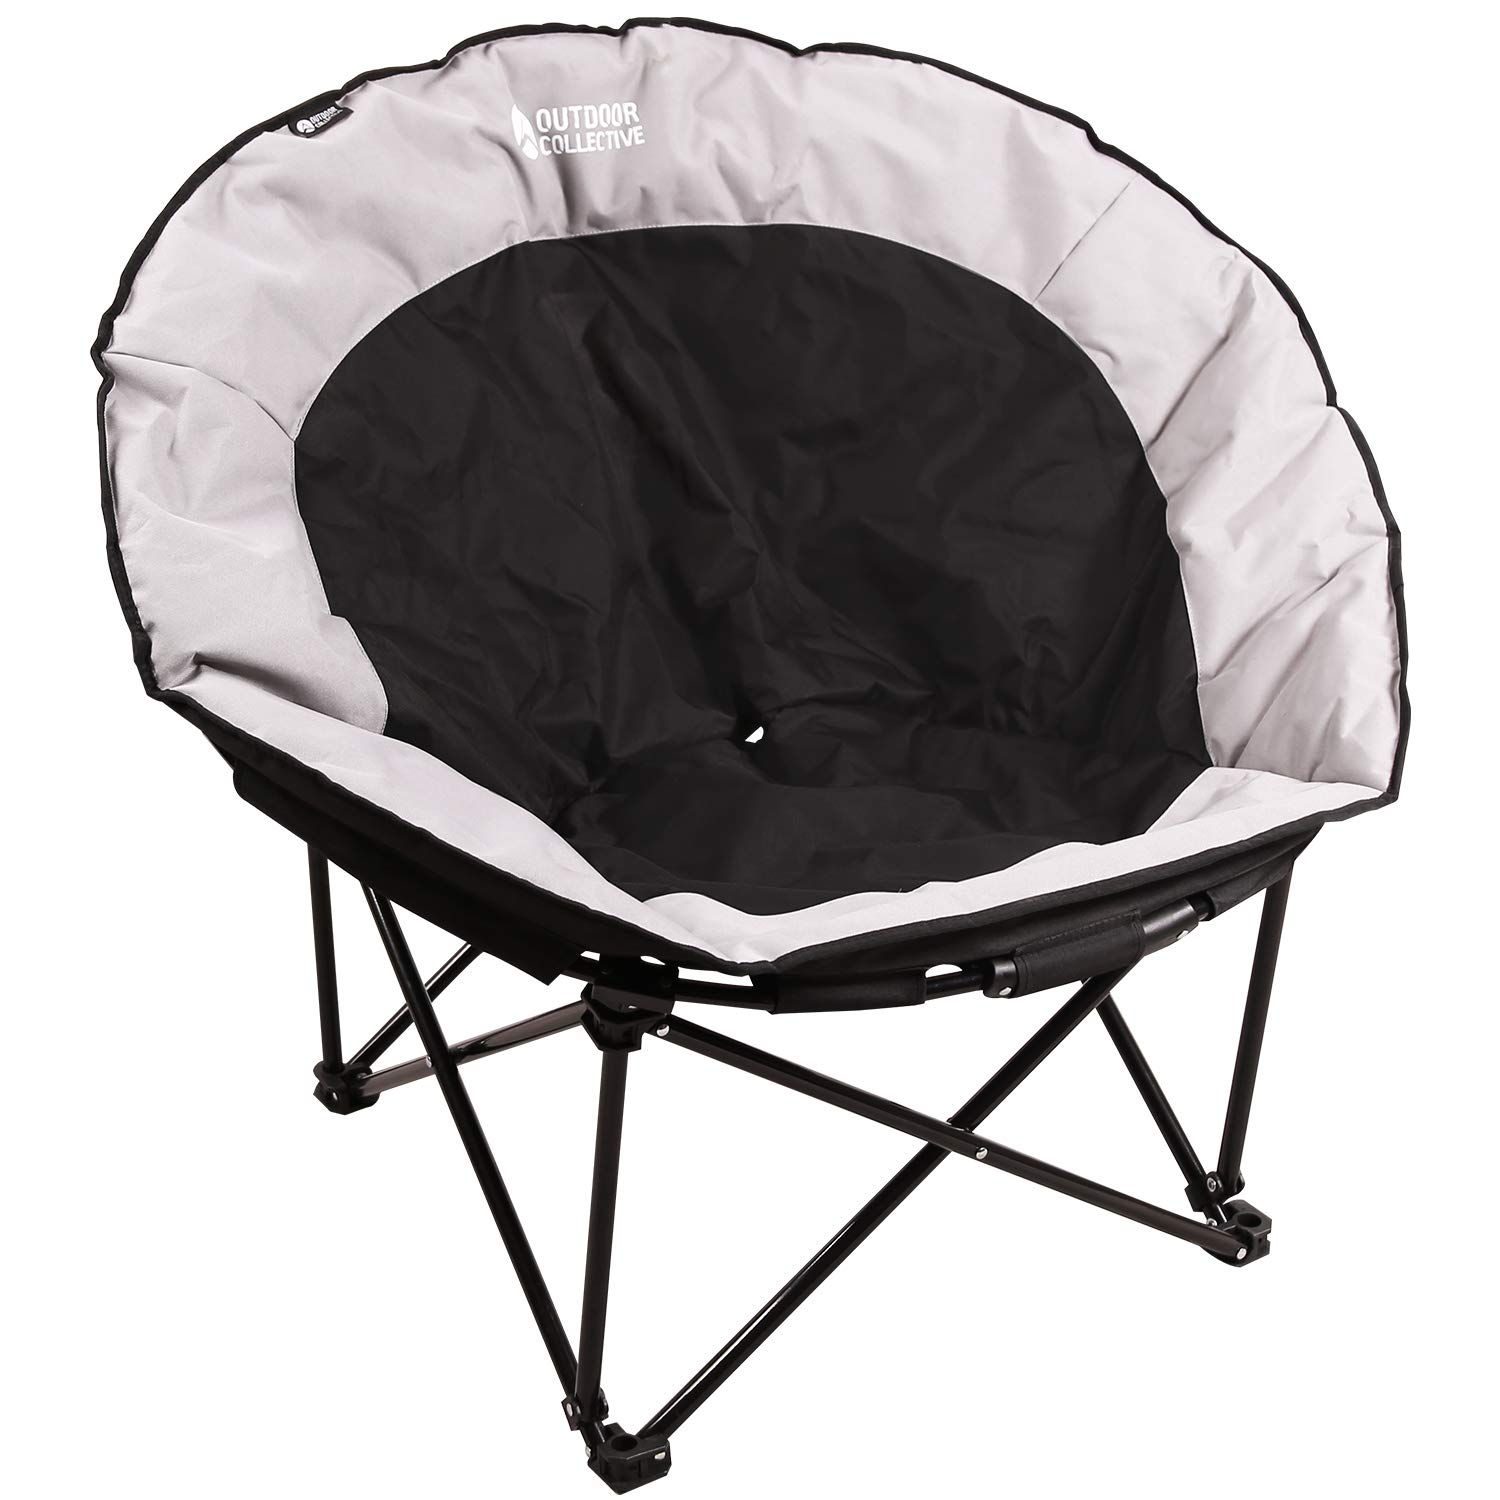 Redcamp Oversized Moon Chairs For Adults Comfy Portable Folding